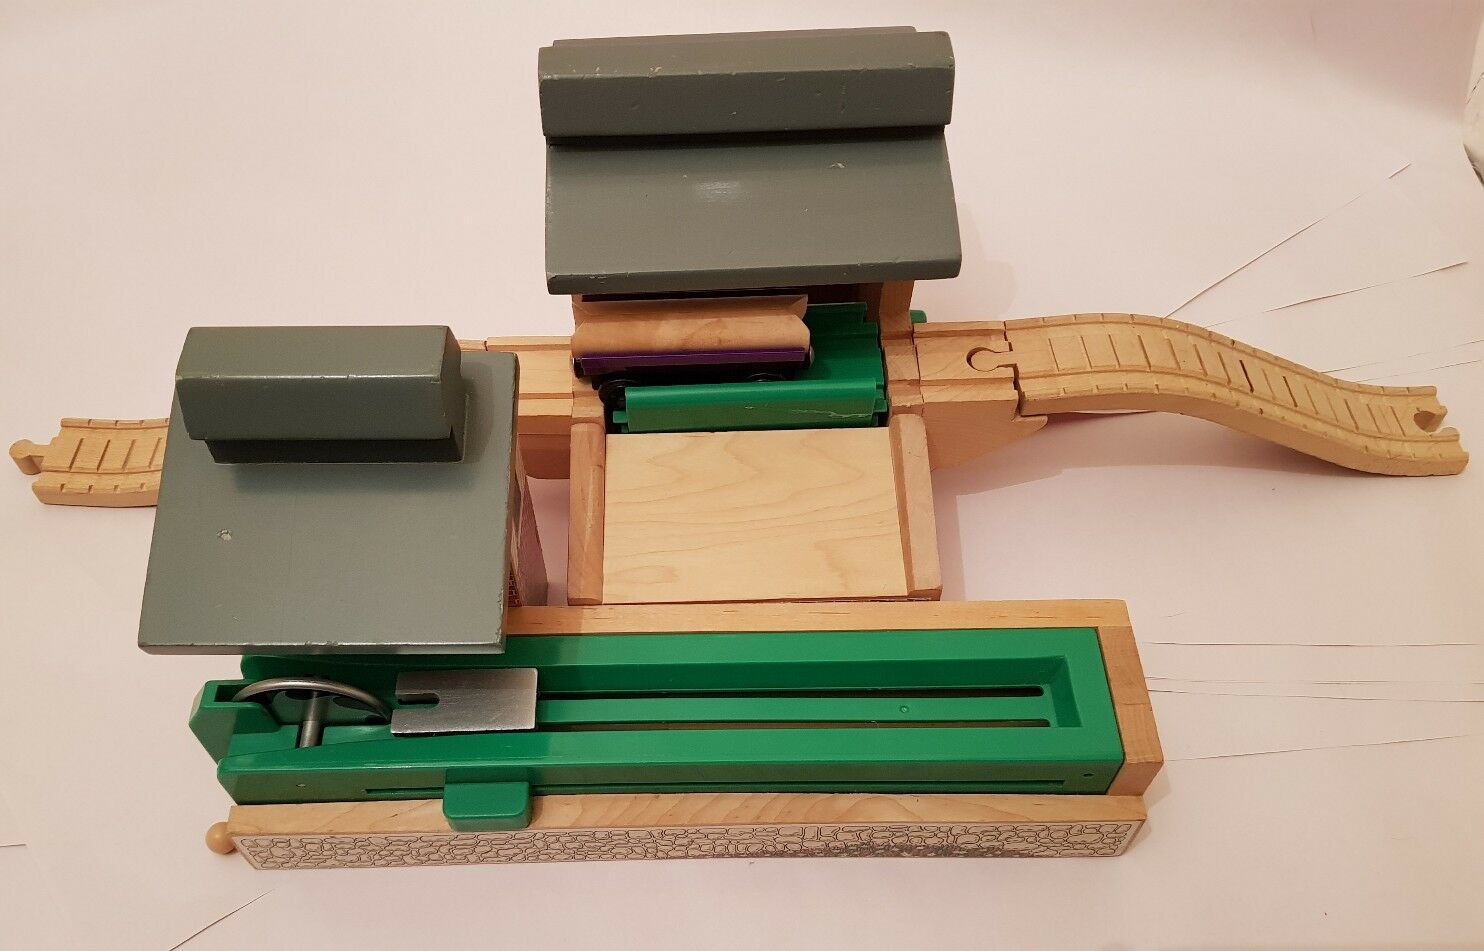 Thomas the tank engine & Friends WOODEN SAWMILL WITH DUMPING DEPOT